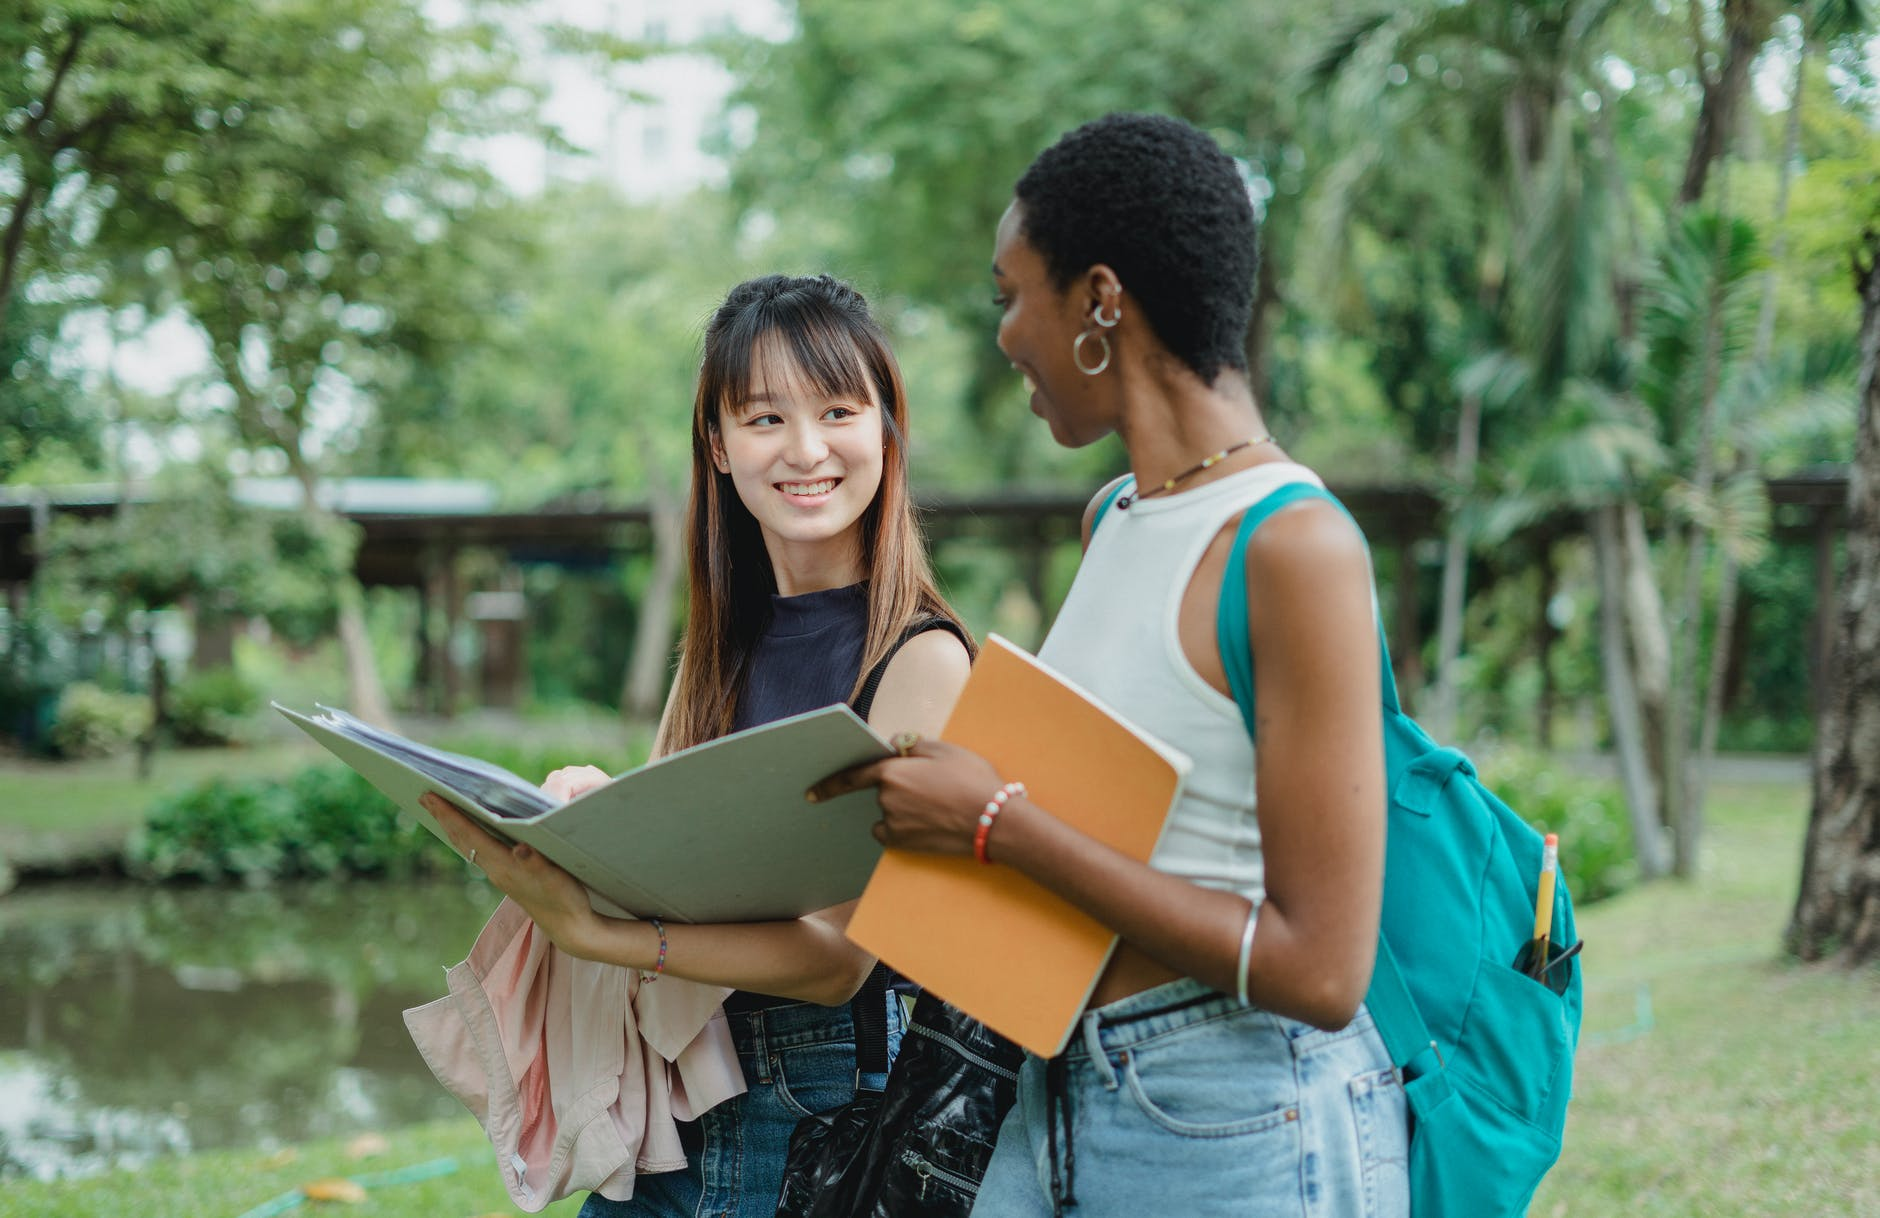 multiethnic female friends speaking while walking in park with notepads